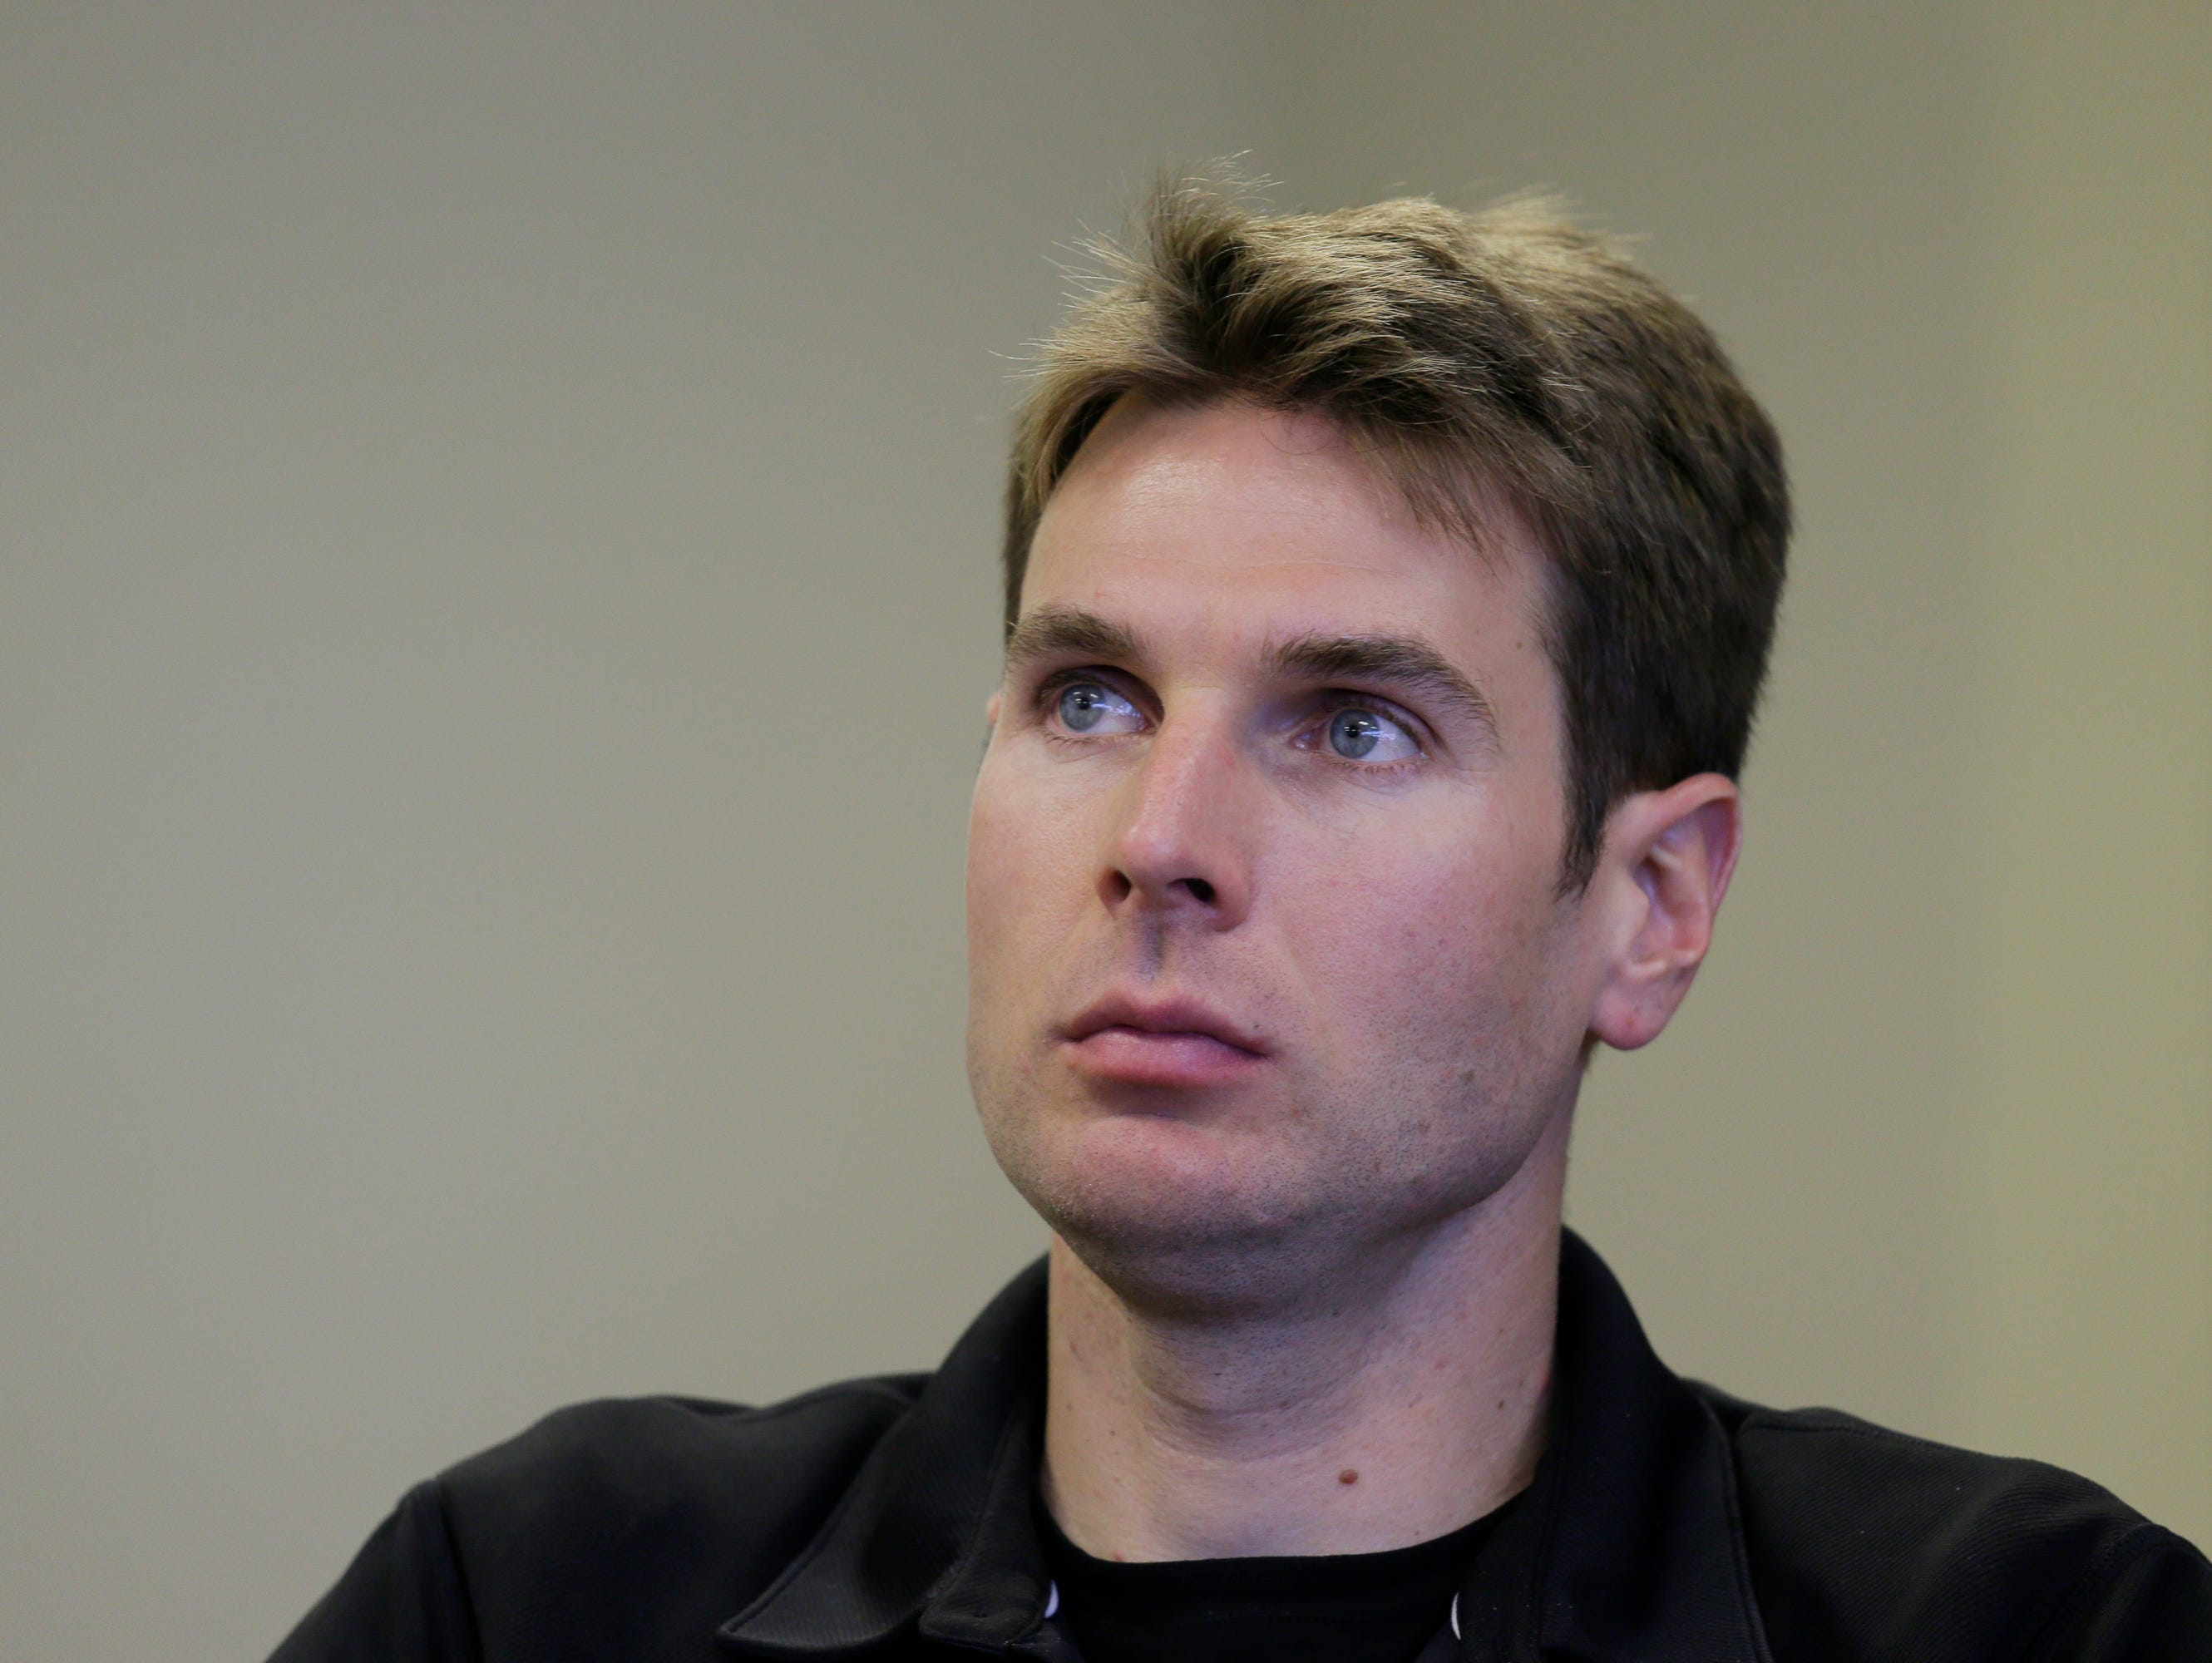 Will Power during a news conference before practice for the IndyCar auto race Friday, Aug. 28, 2015, in Sonoma, Calif. (AP Photo/Eric Risberg)